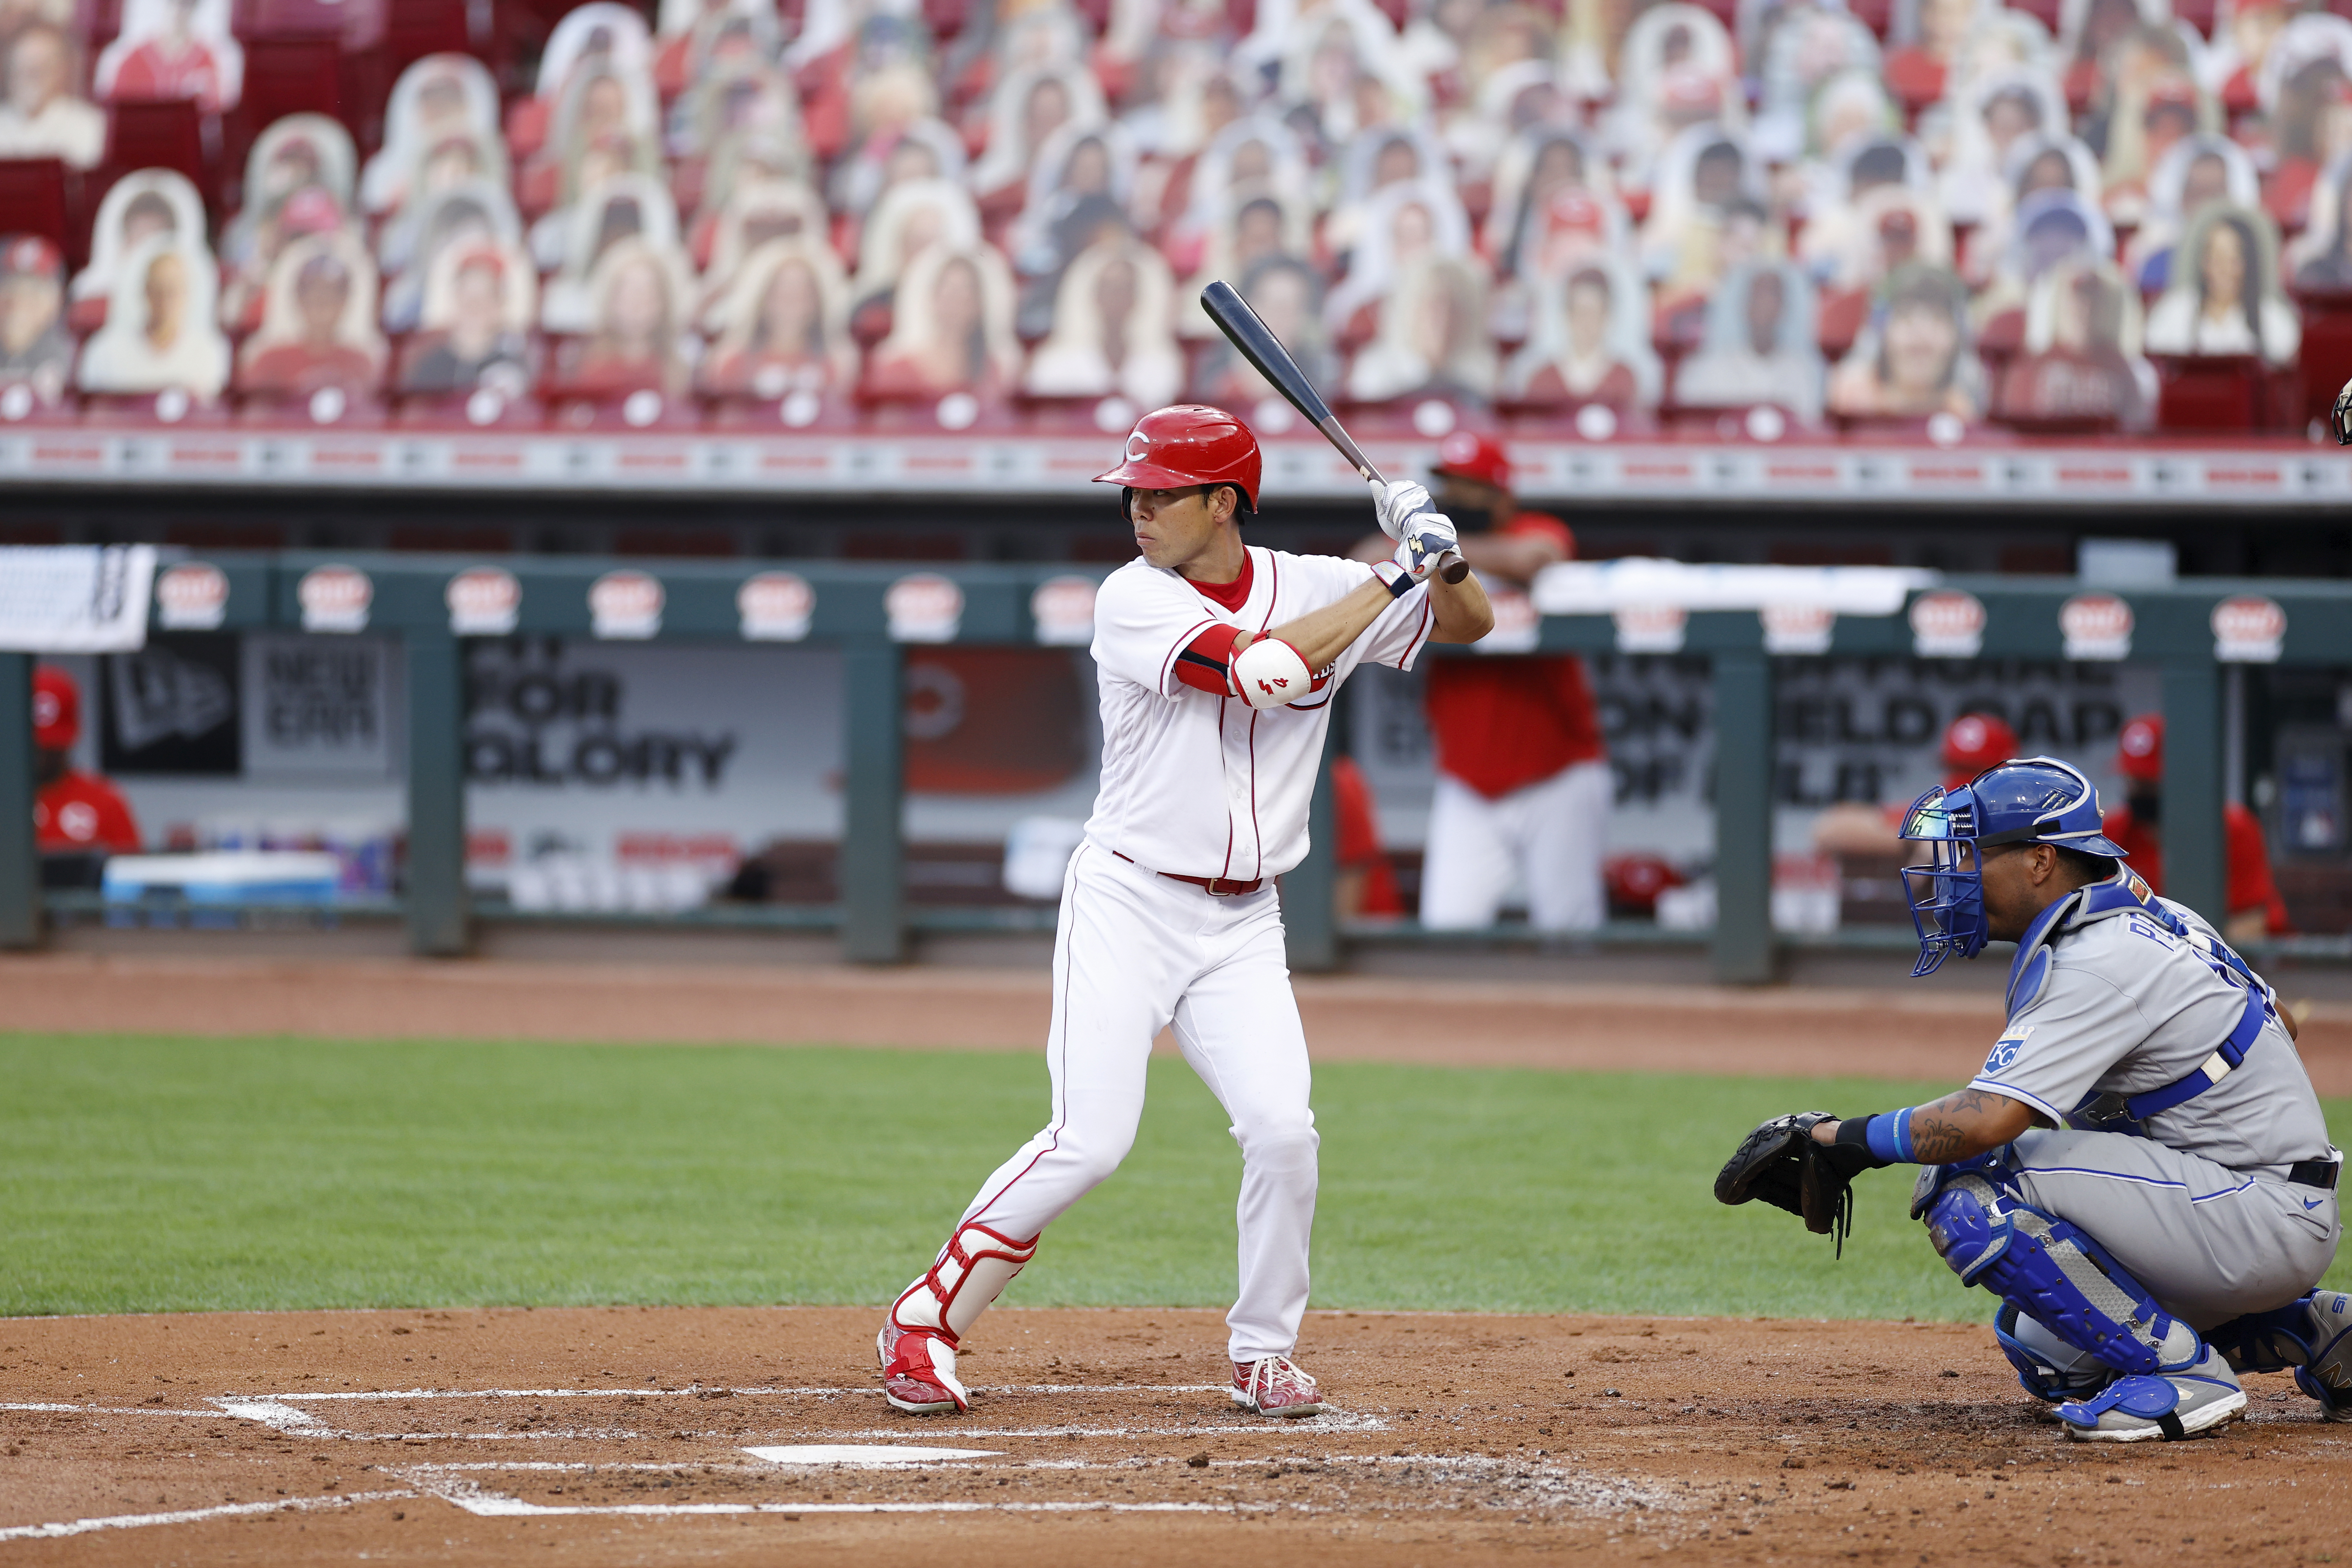 Shogo Akiyama of the Cincinnati Reds bats in the first inning of a game against the Kansas City Royals on Wednesday, August 12.